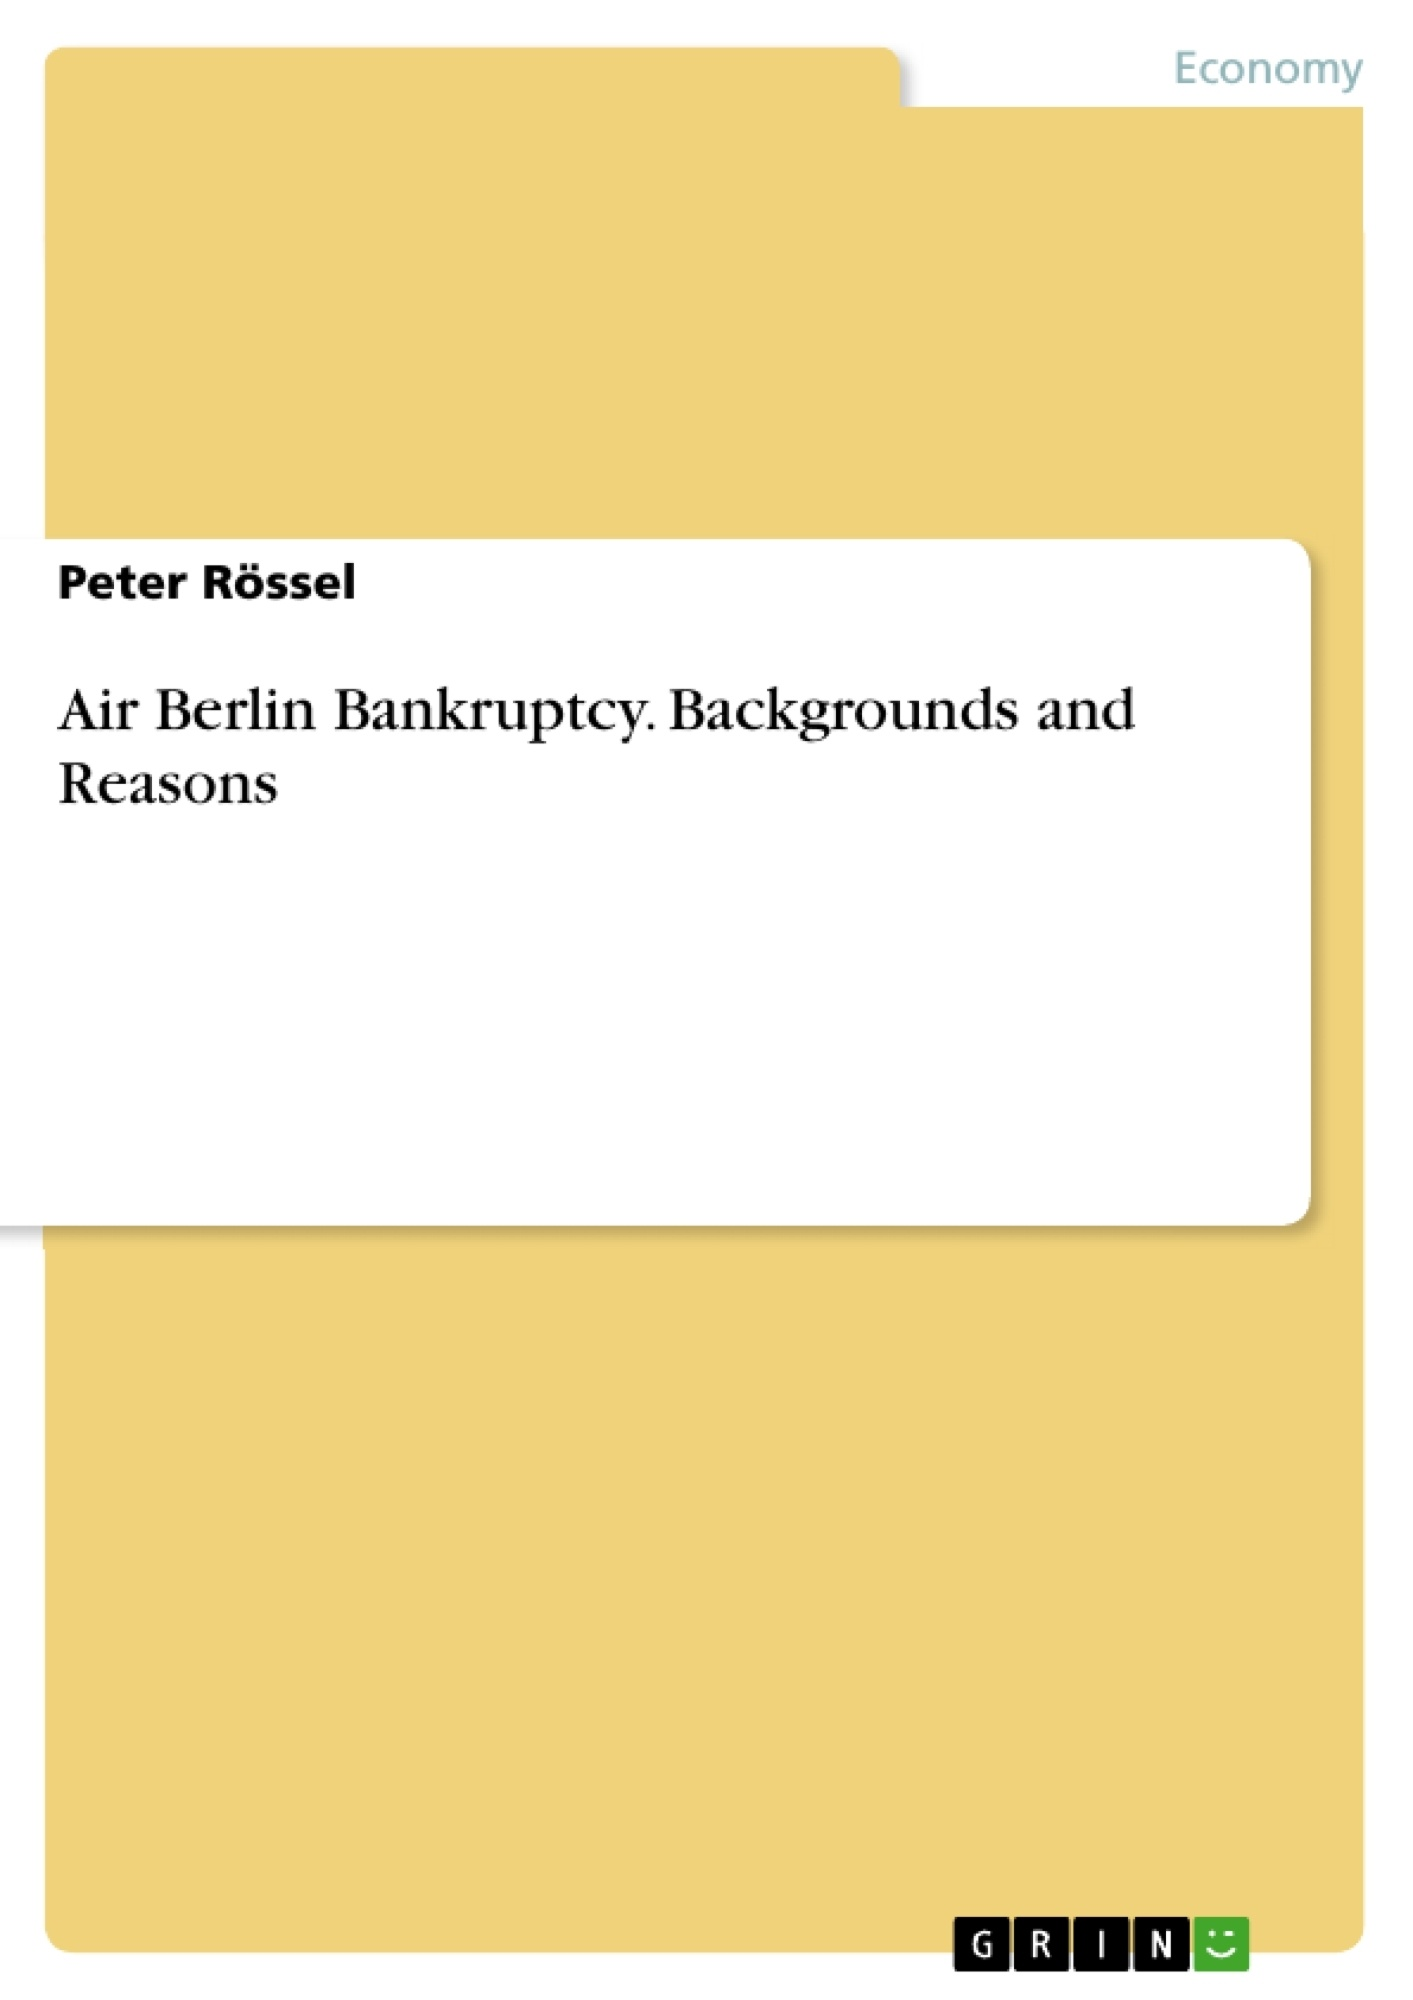 Title: Air Berlin Bankruptcy. Backgrounds and Reasons